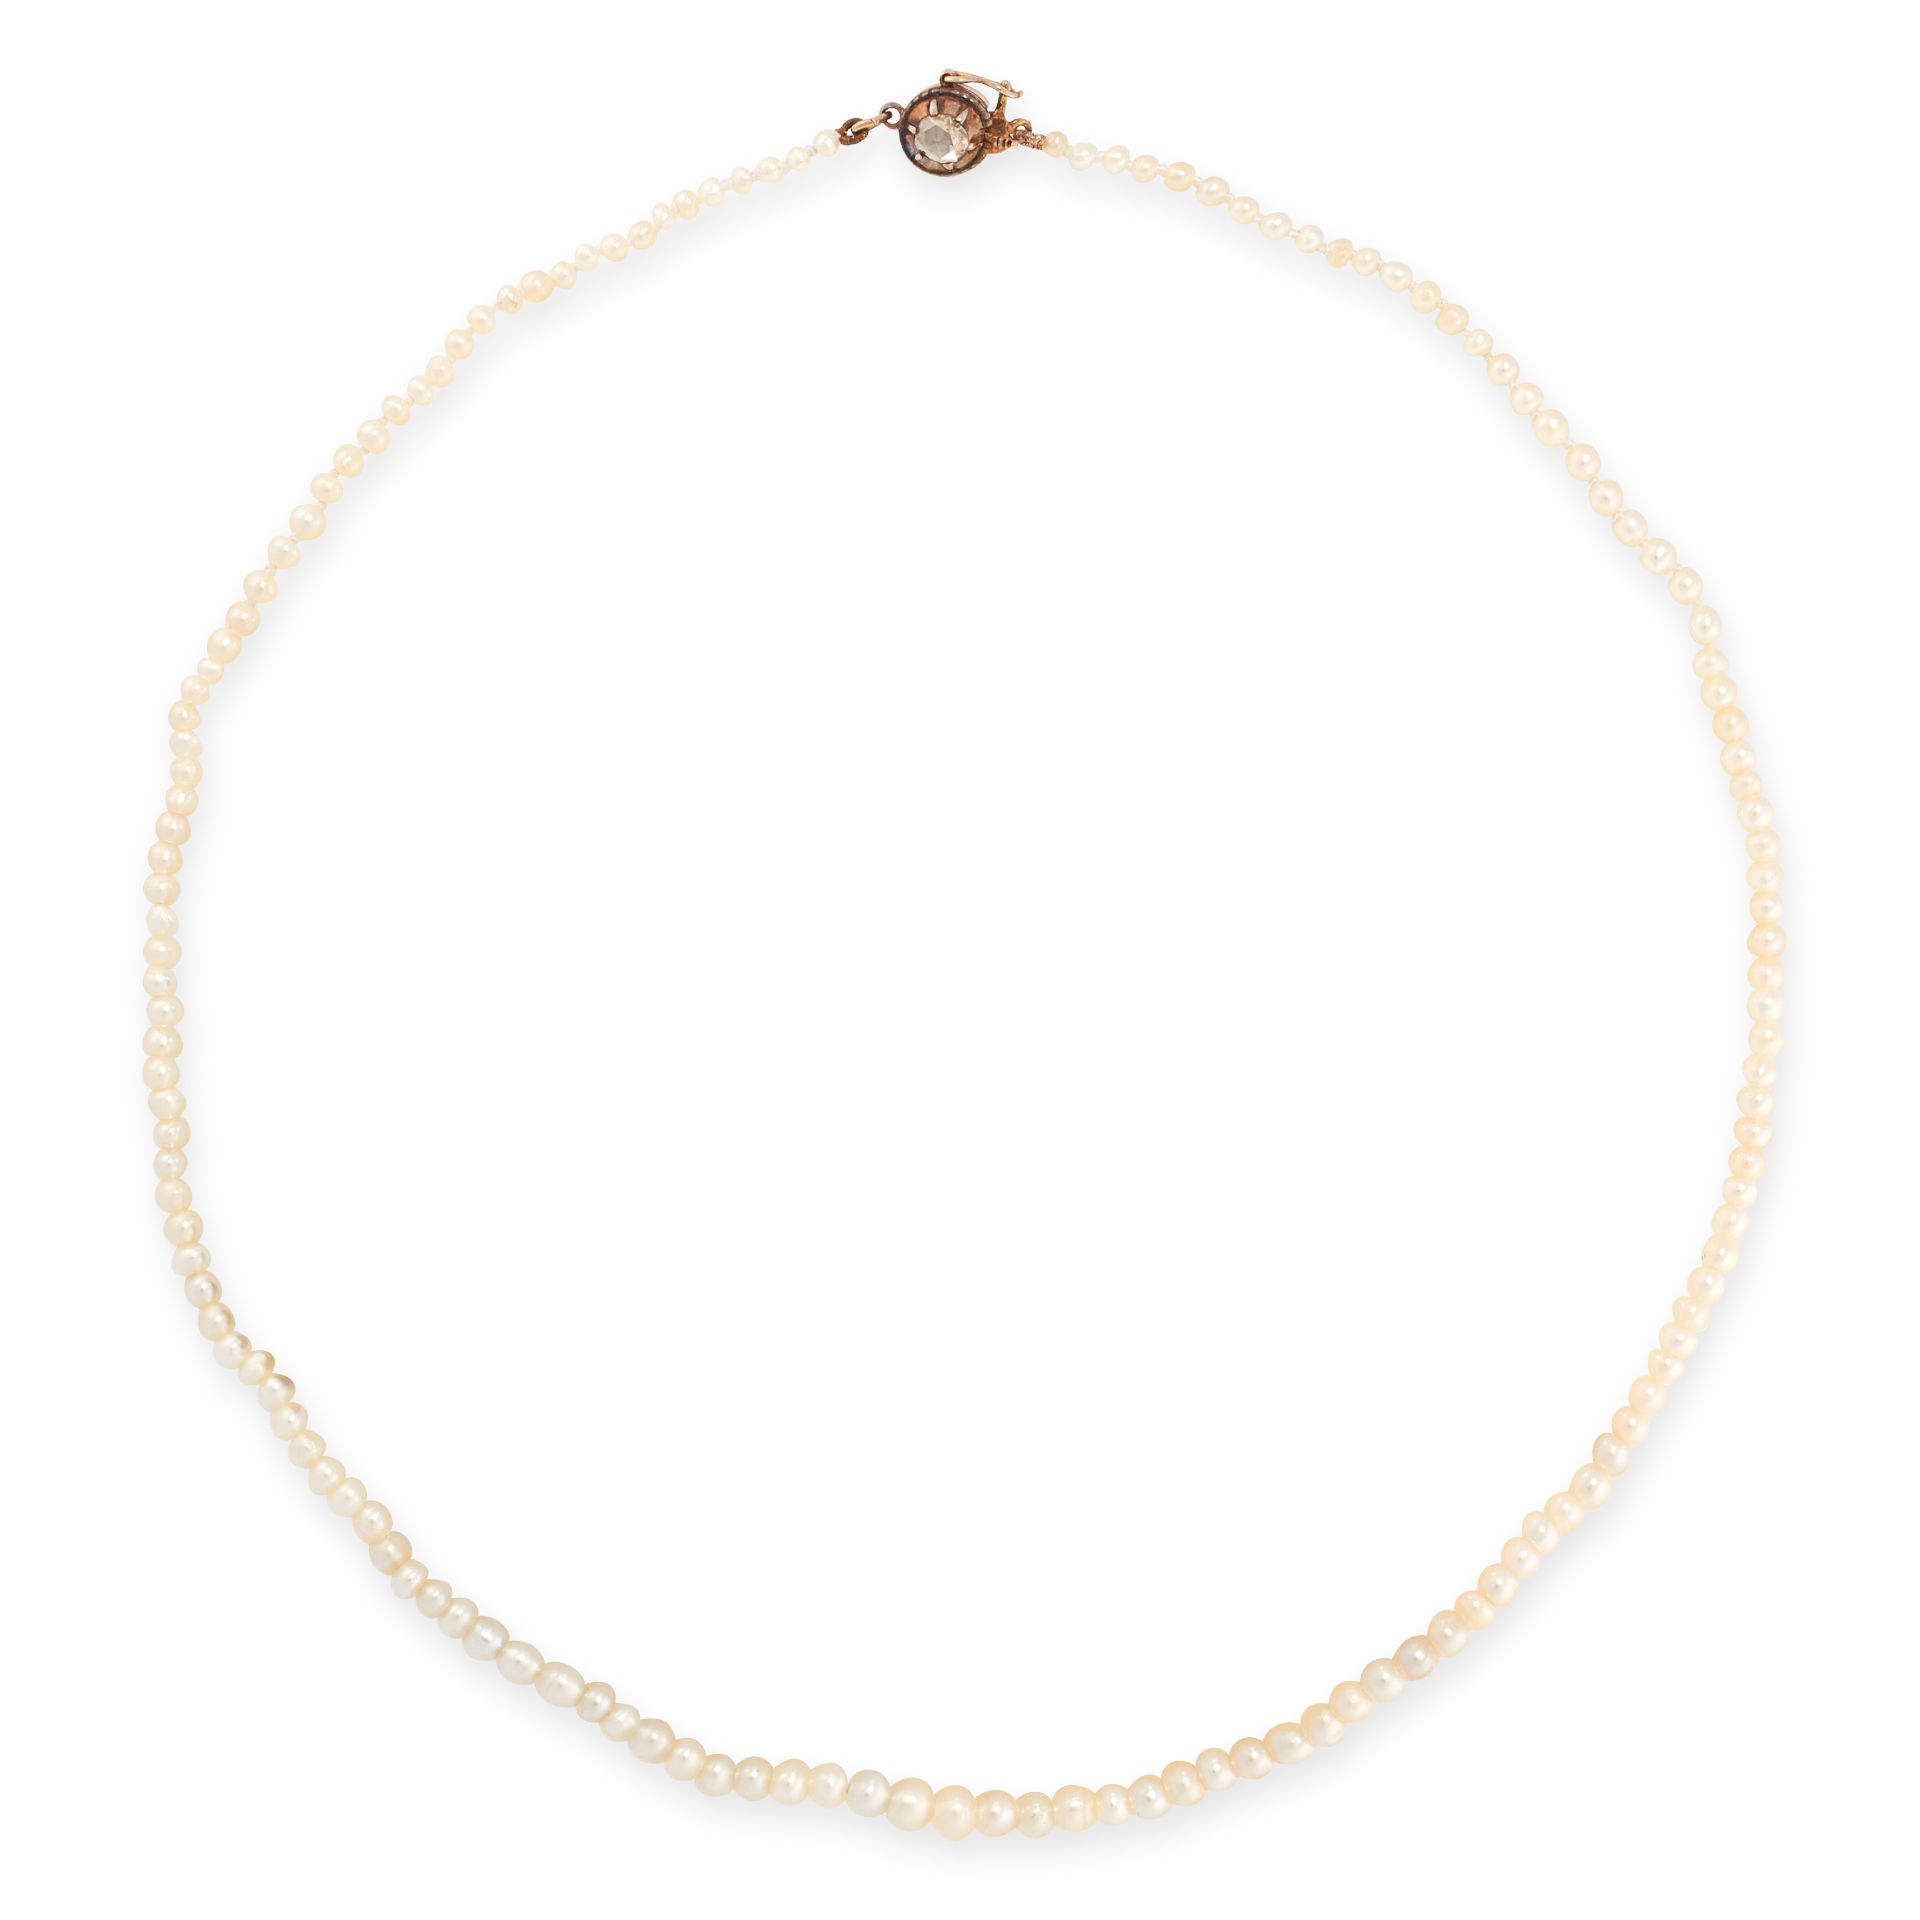 AN ANTIQUE NATURAL PEARL AND DIAMOND NECKLACE in yellow gold and silver, comprising a single row